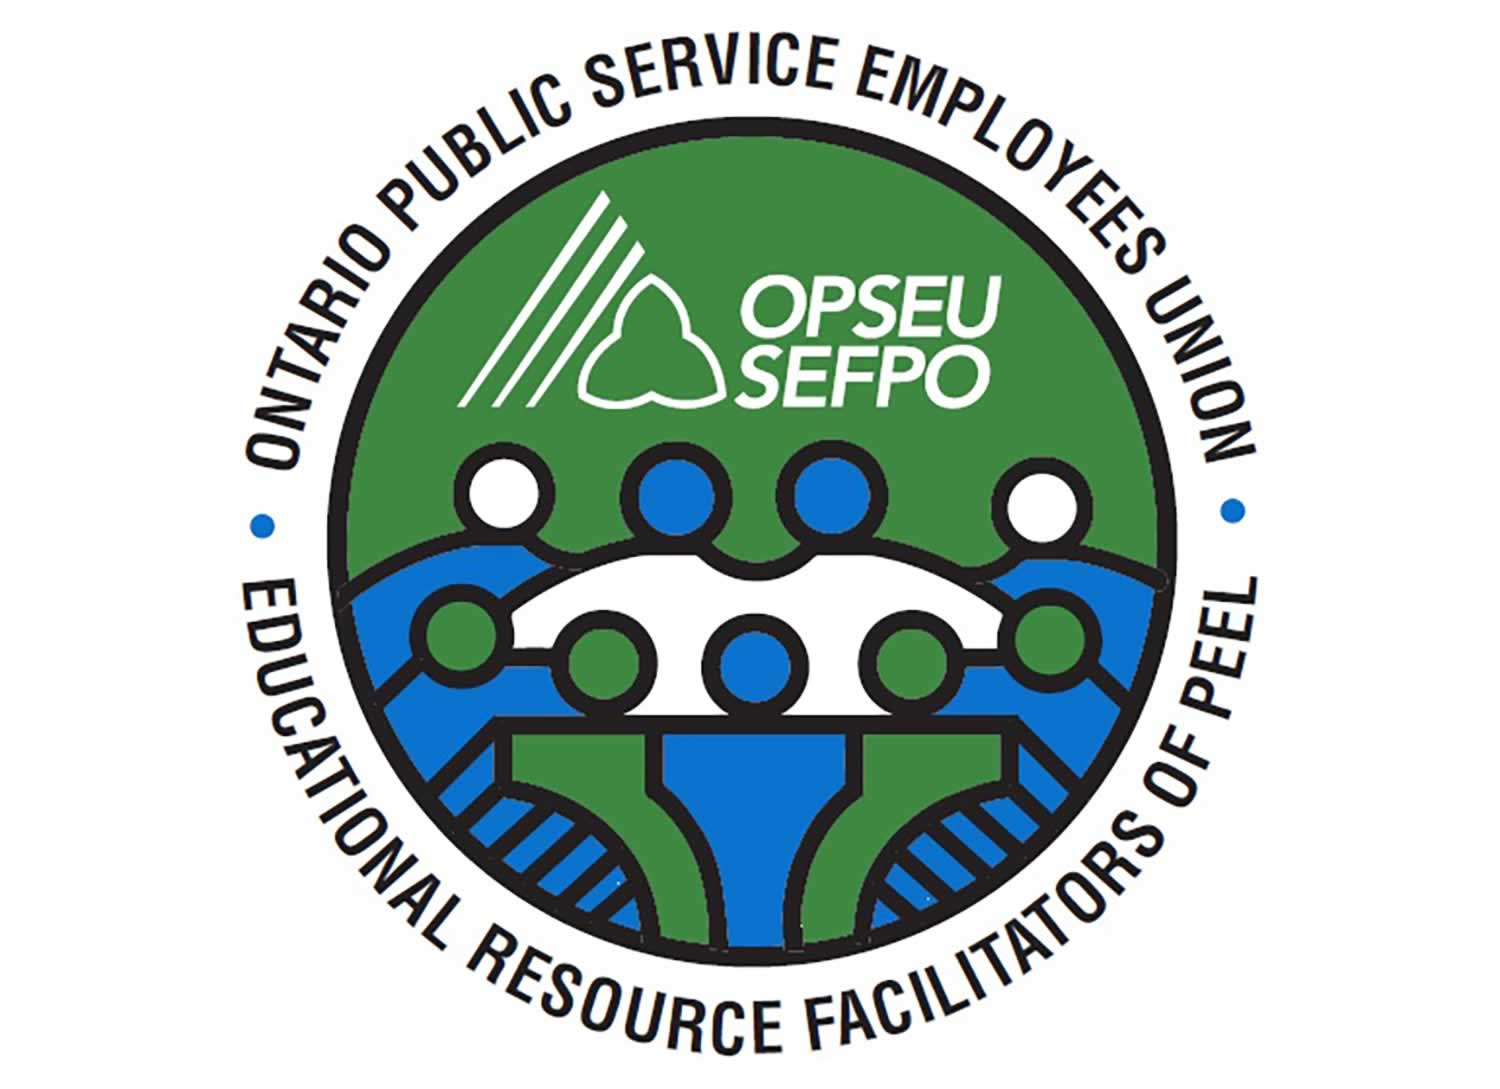 OPSEU and ERFP education members voted on ratification